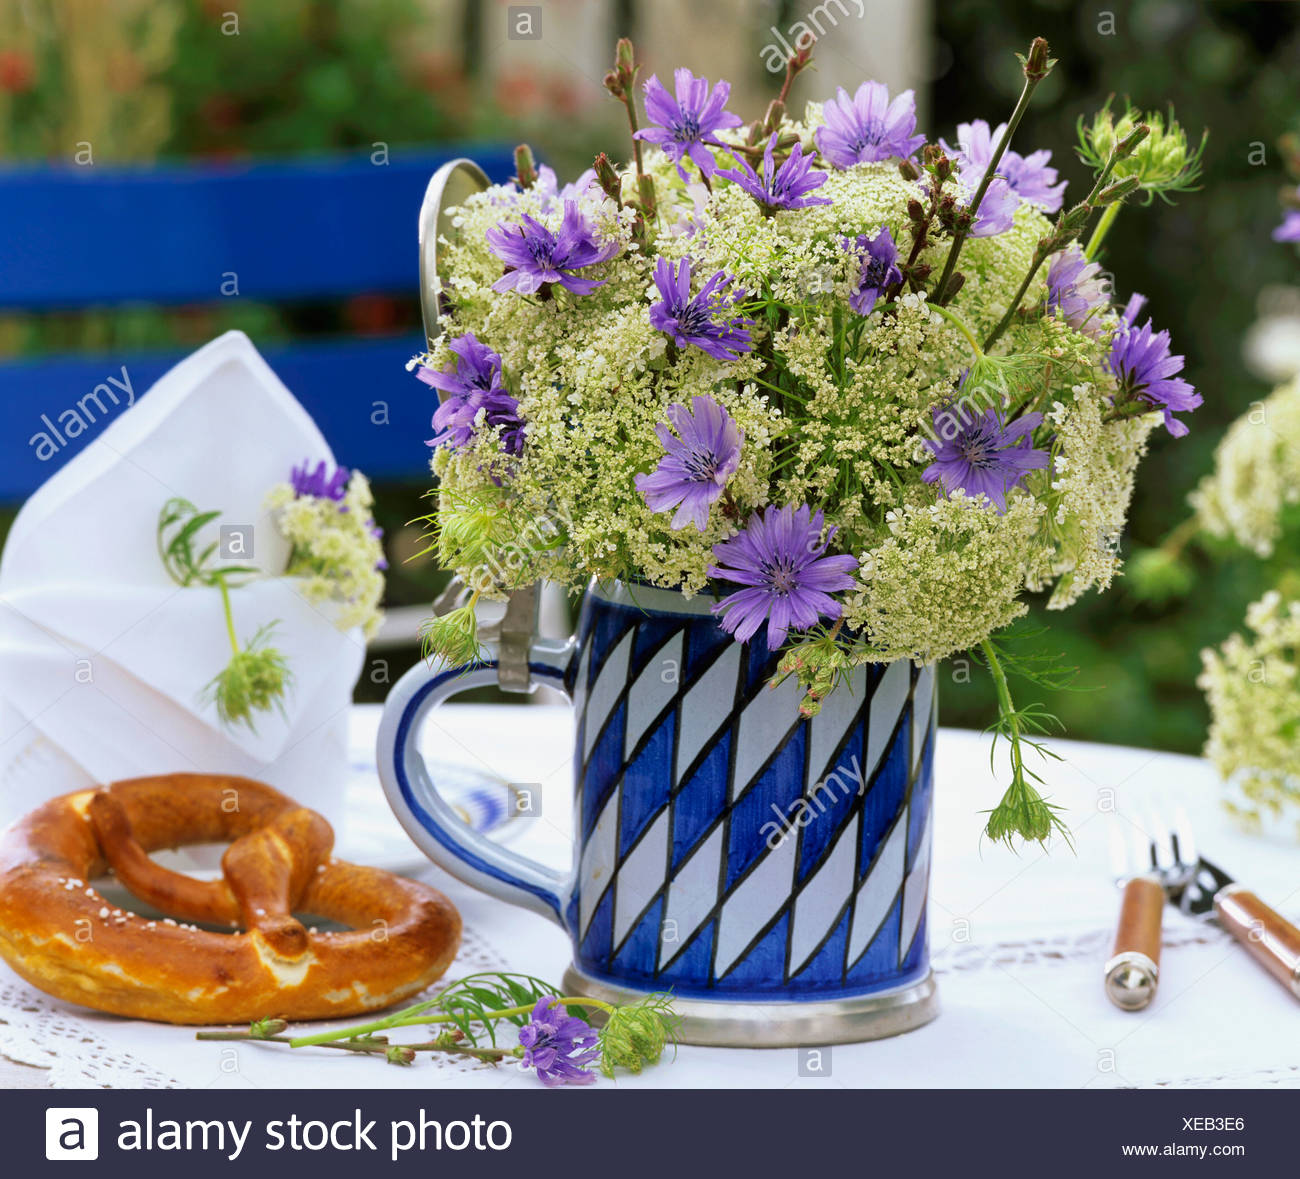 Stein Flowers Stock Photos & Stein Flowers Stock Images - Alamy